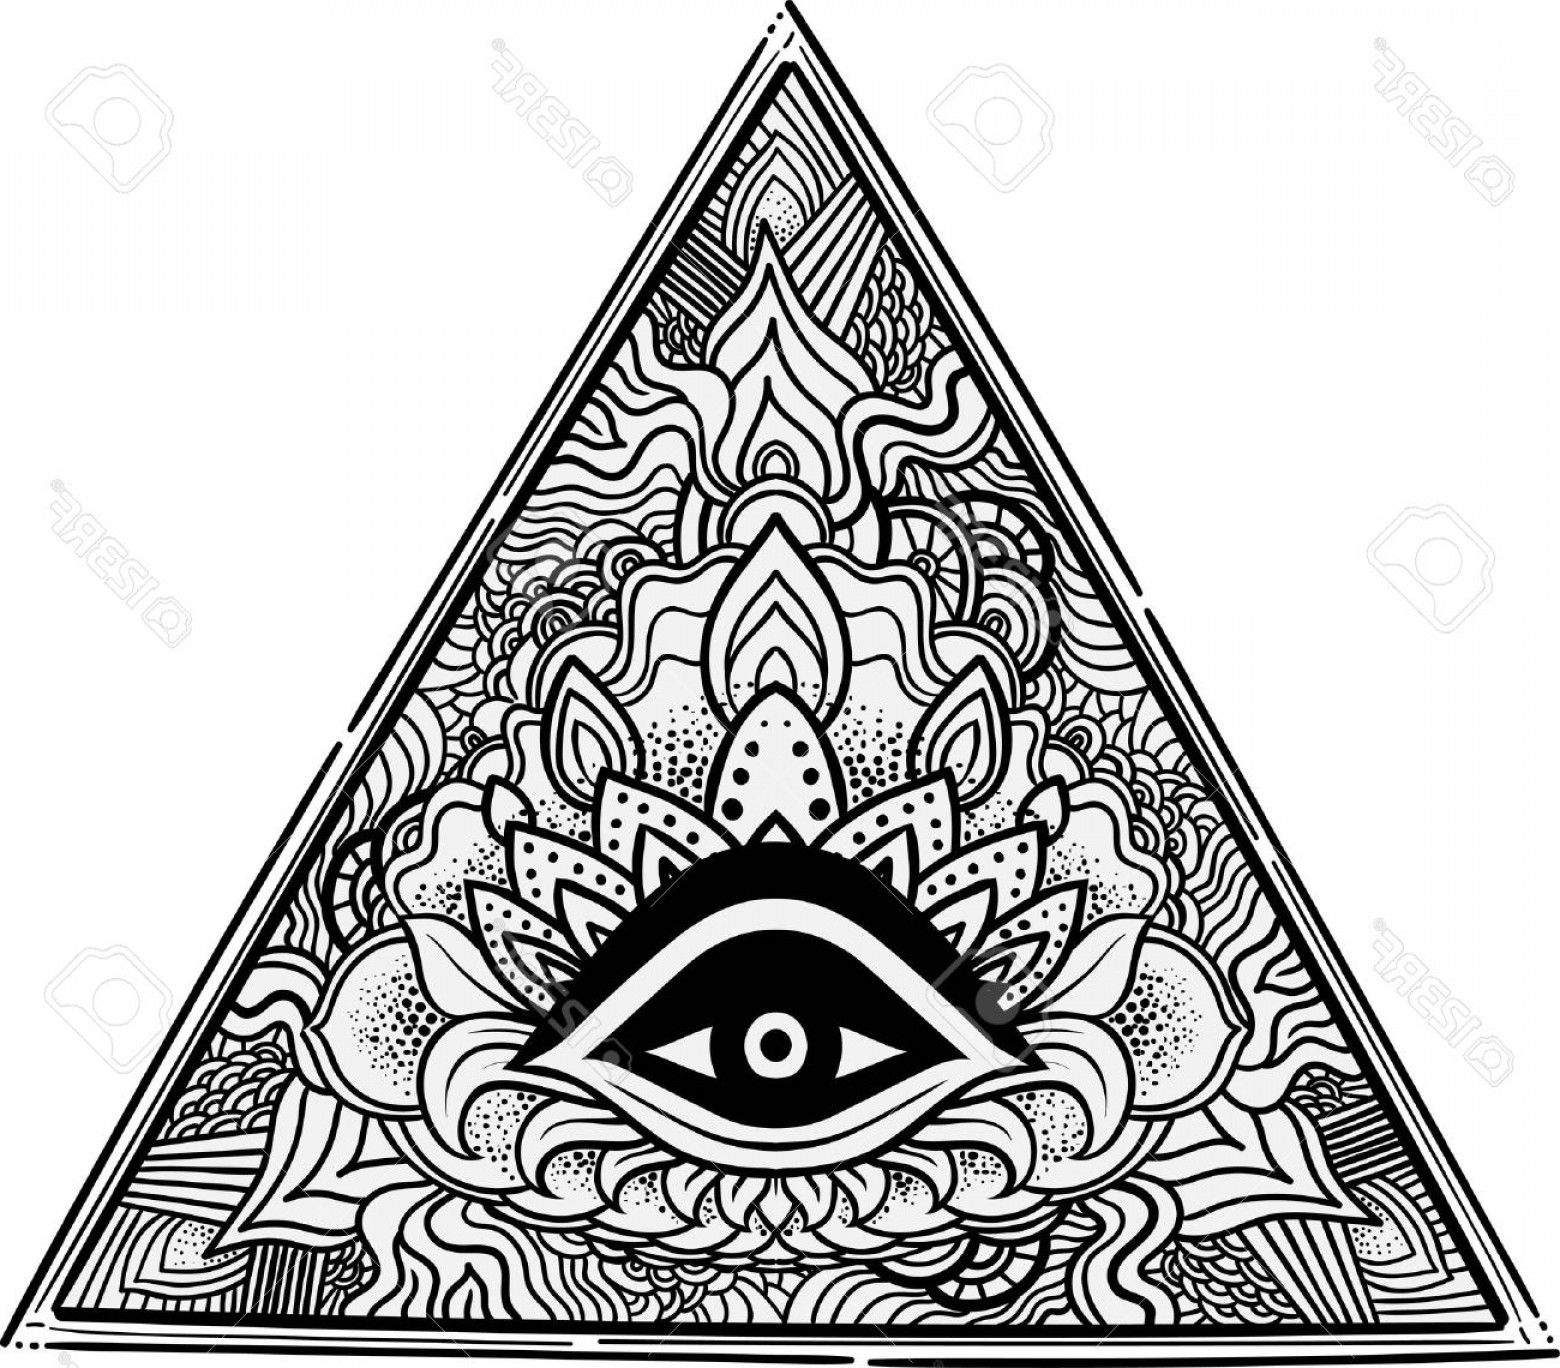 Pyramid With Eye Of Providence Vector: Photostock Vector Eye Of Providence Masonic Symbol All Seeing Eye Inside Triangle Pyramid Hand Drawn Alchemy Spiritual